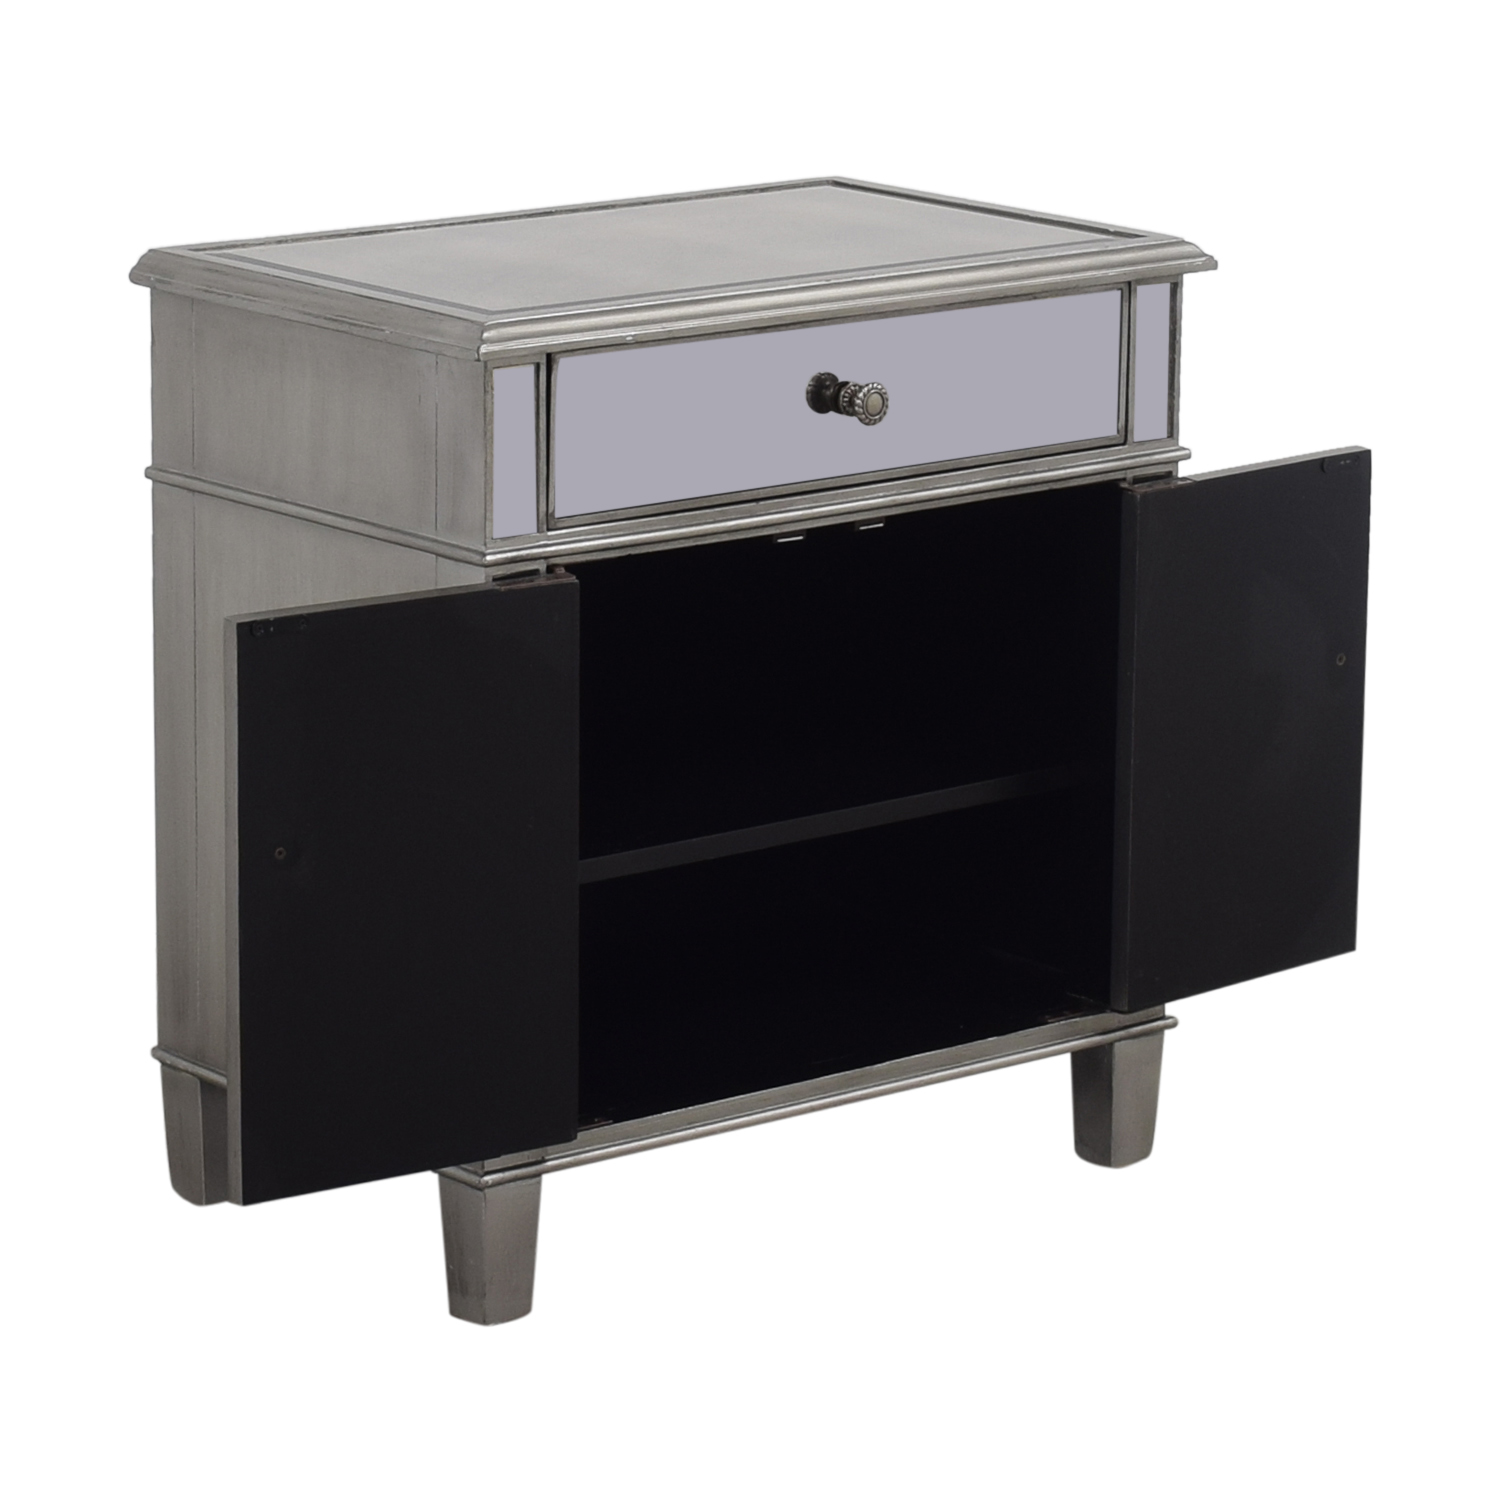 shop Single Drawer Mirrored Cabinet Storage